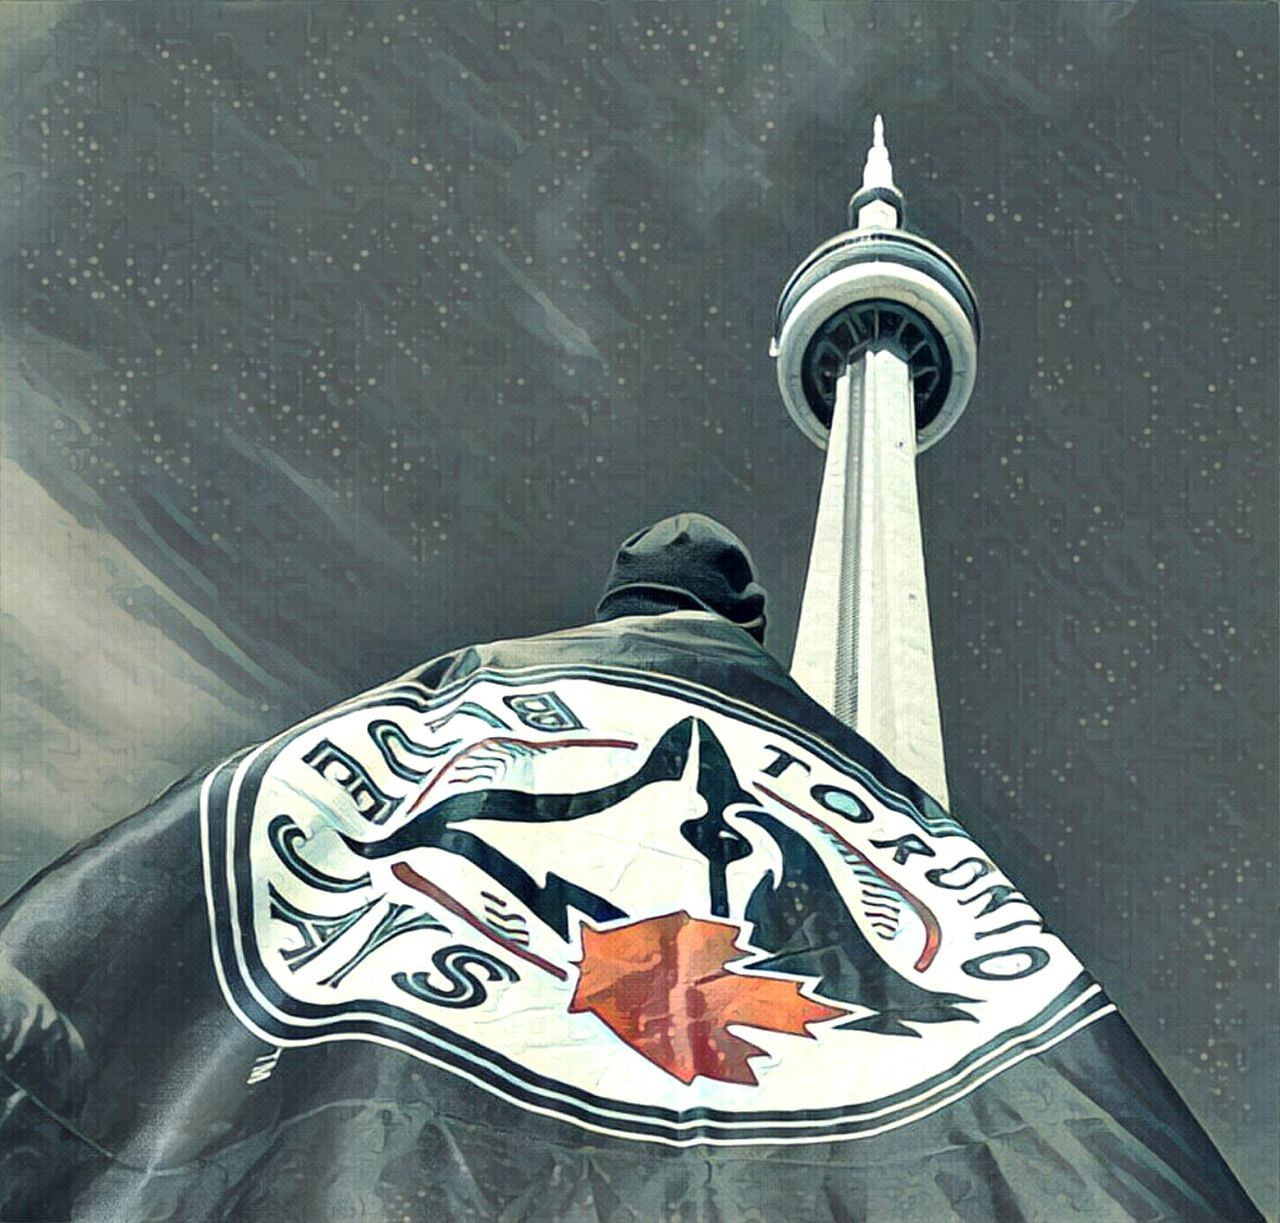 Toronto Canada CN Tower - Toronto TorontoBlueJays Maple Leaf Canada, Eh? Baseball ⚾ Happy183rdtoronto Outdoors Sky Home Sweet Home ♥ Bornandraised Canada